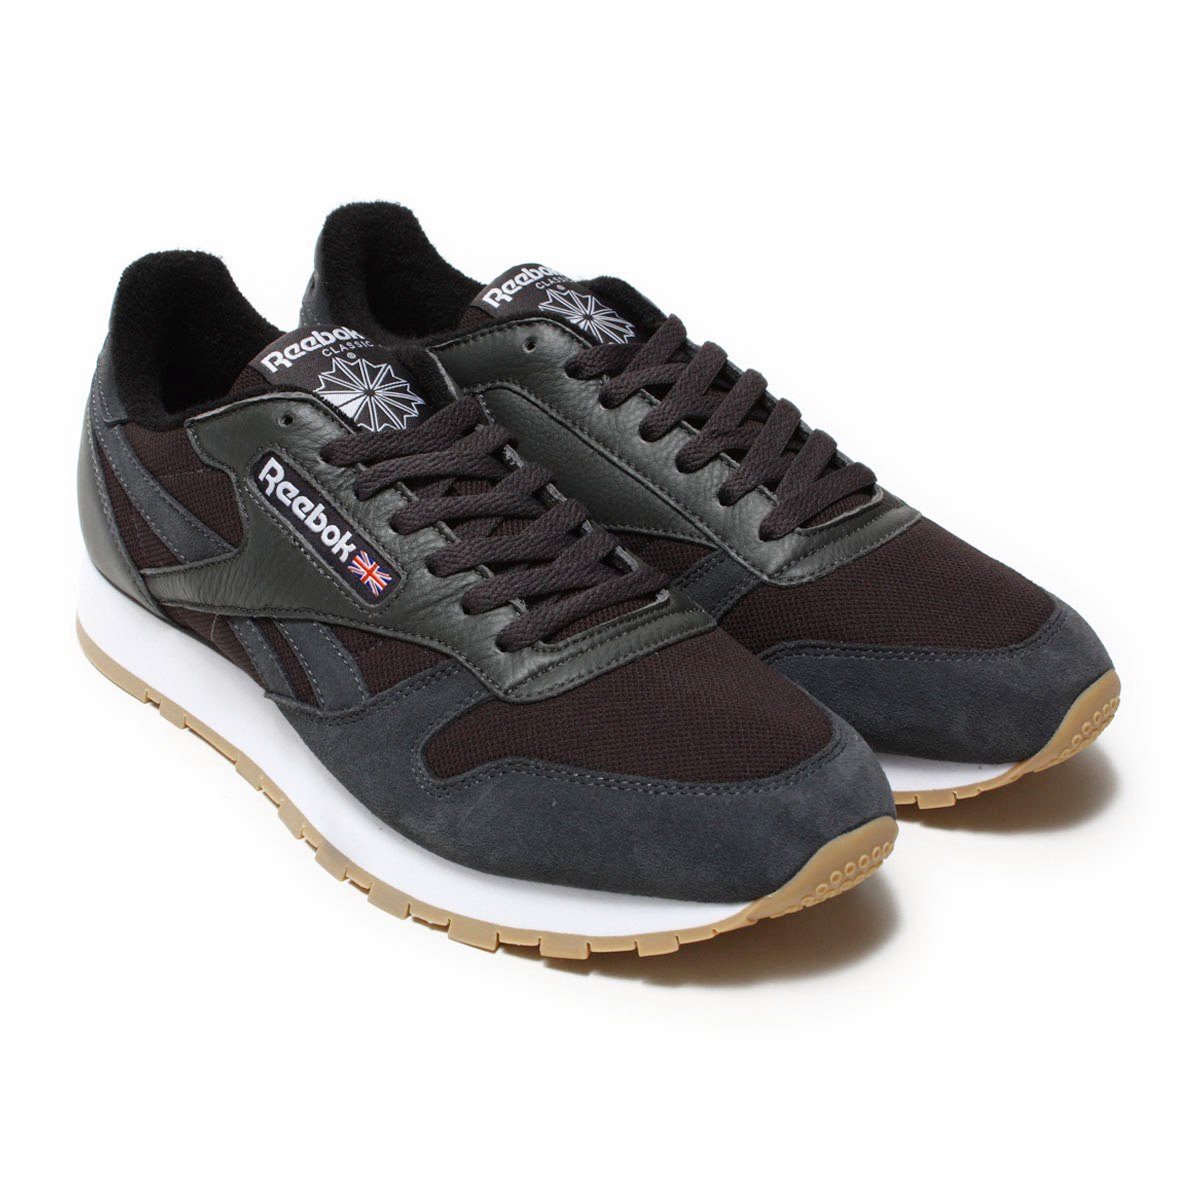 e7f45778d72 Reebok CLASSIC (Reebok classical music) sneakers. The model that is popular  with world wide even now that the classic leather (CLASSIC LEATHER) was  released ...